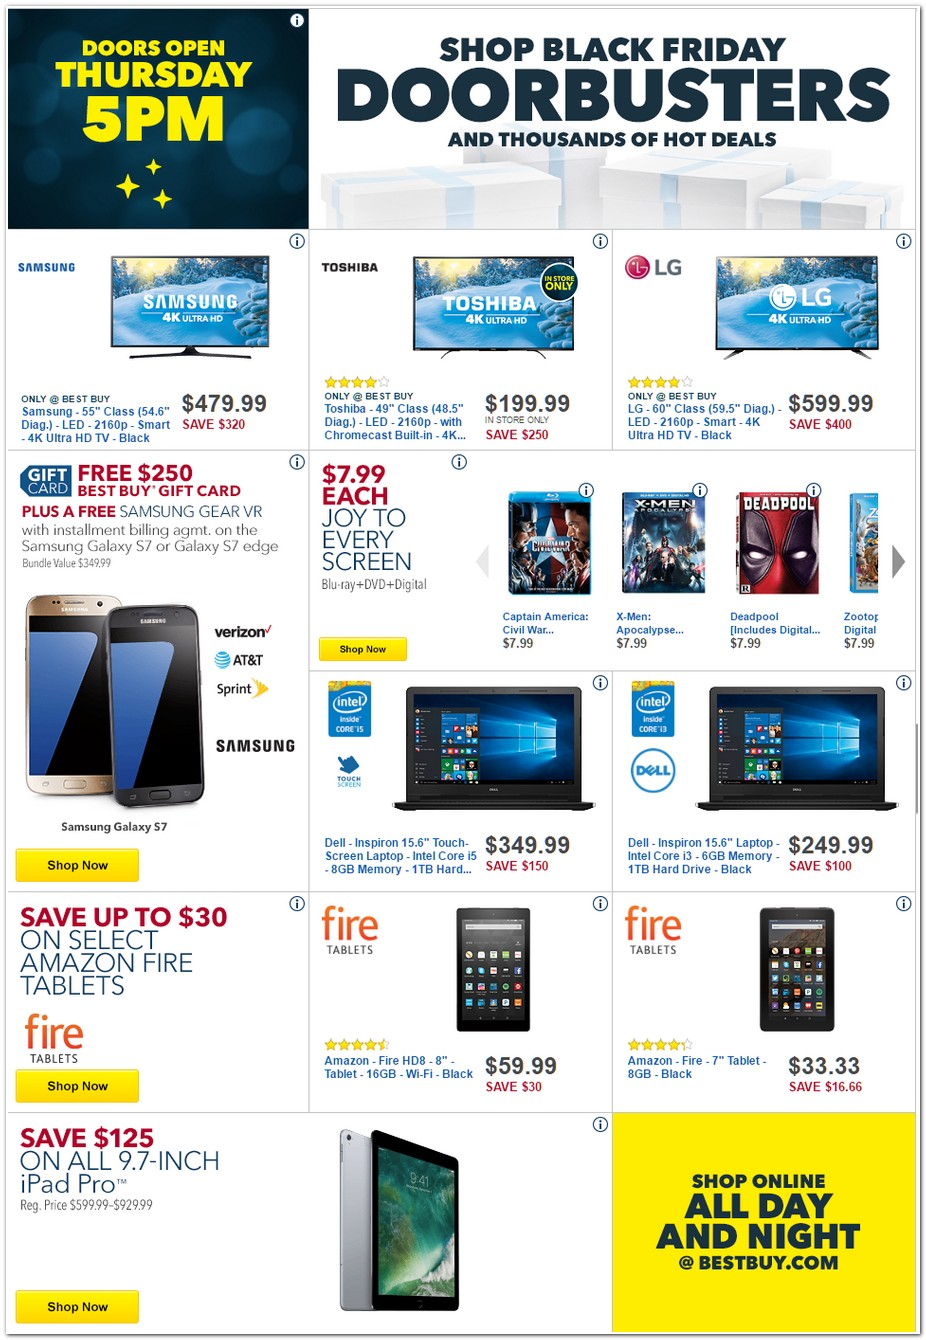 Best Buy Black Friday 2016 Ad Iphone 7 Ps4 Pro Bundle Tvs And Other Huge Deals Bgr